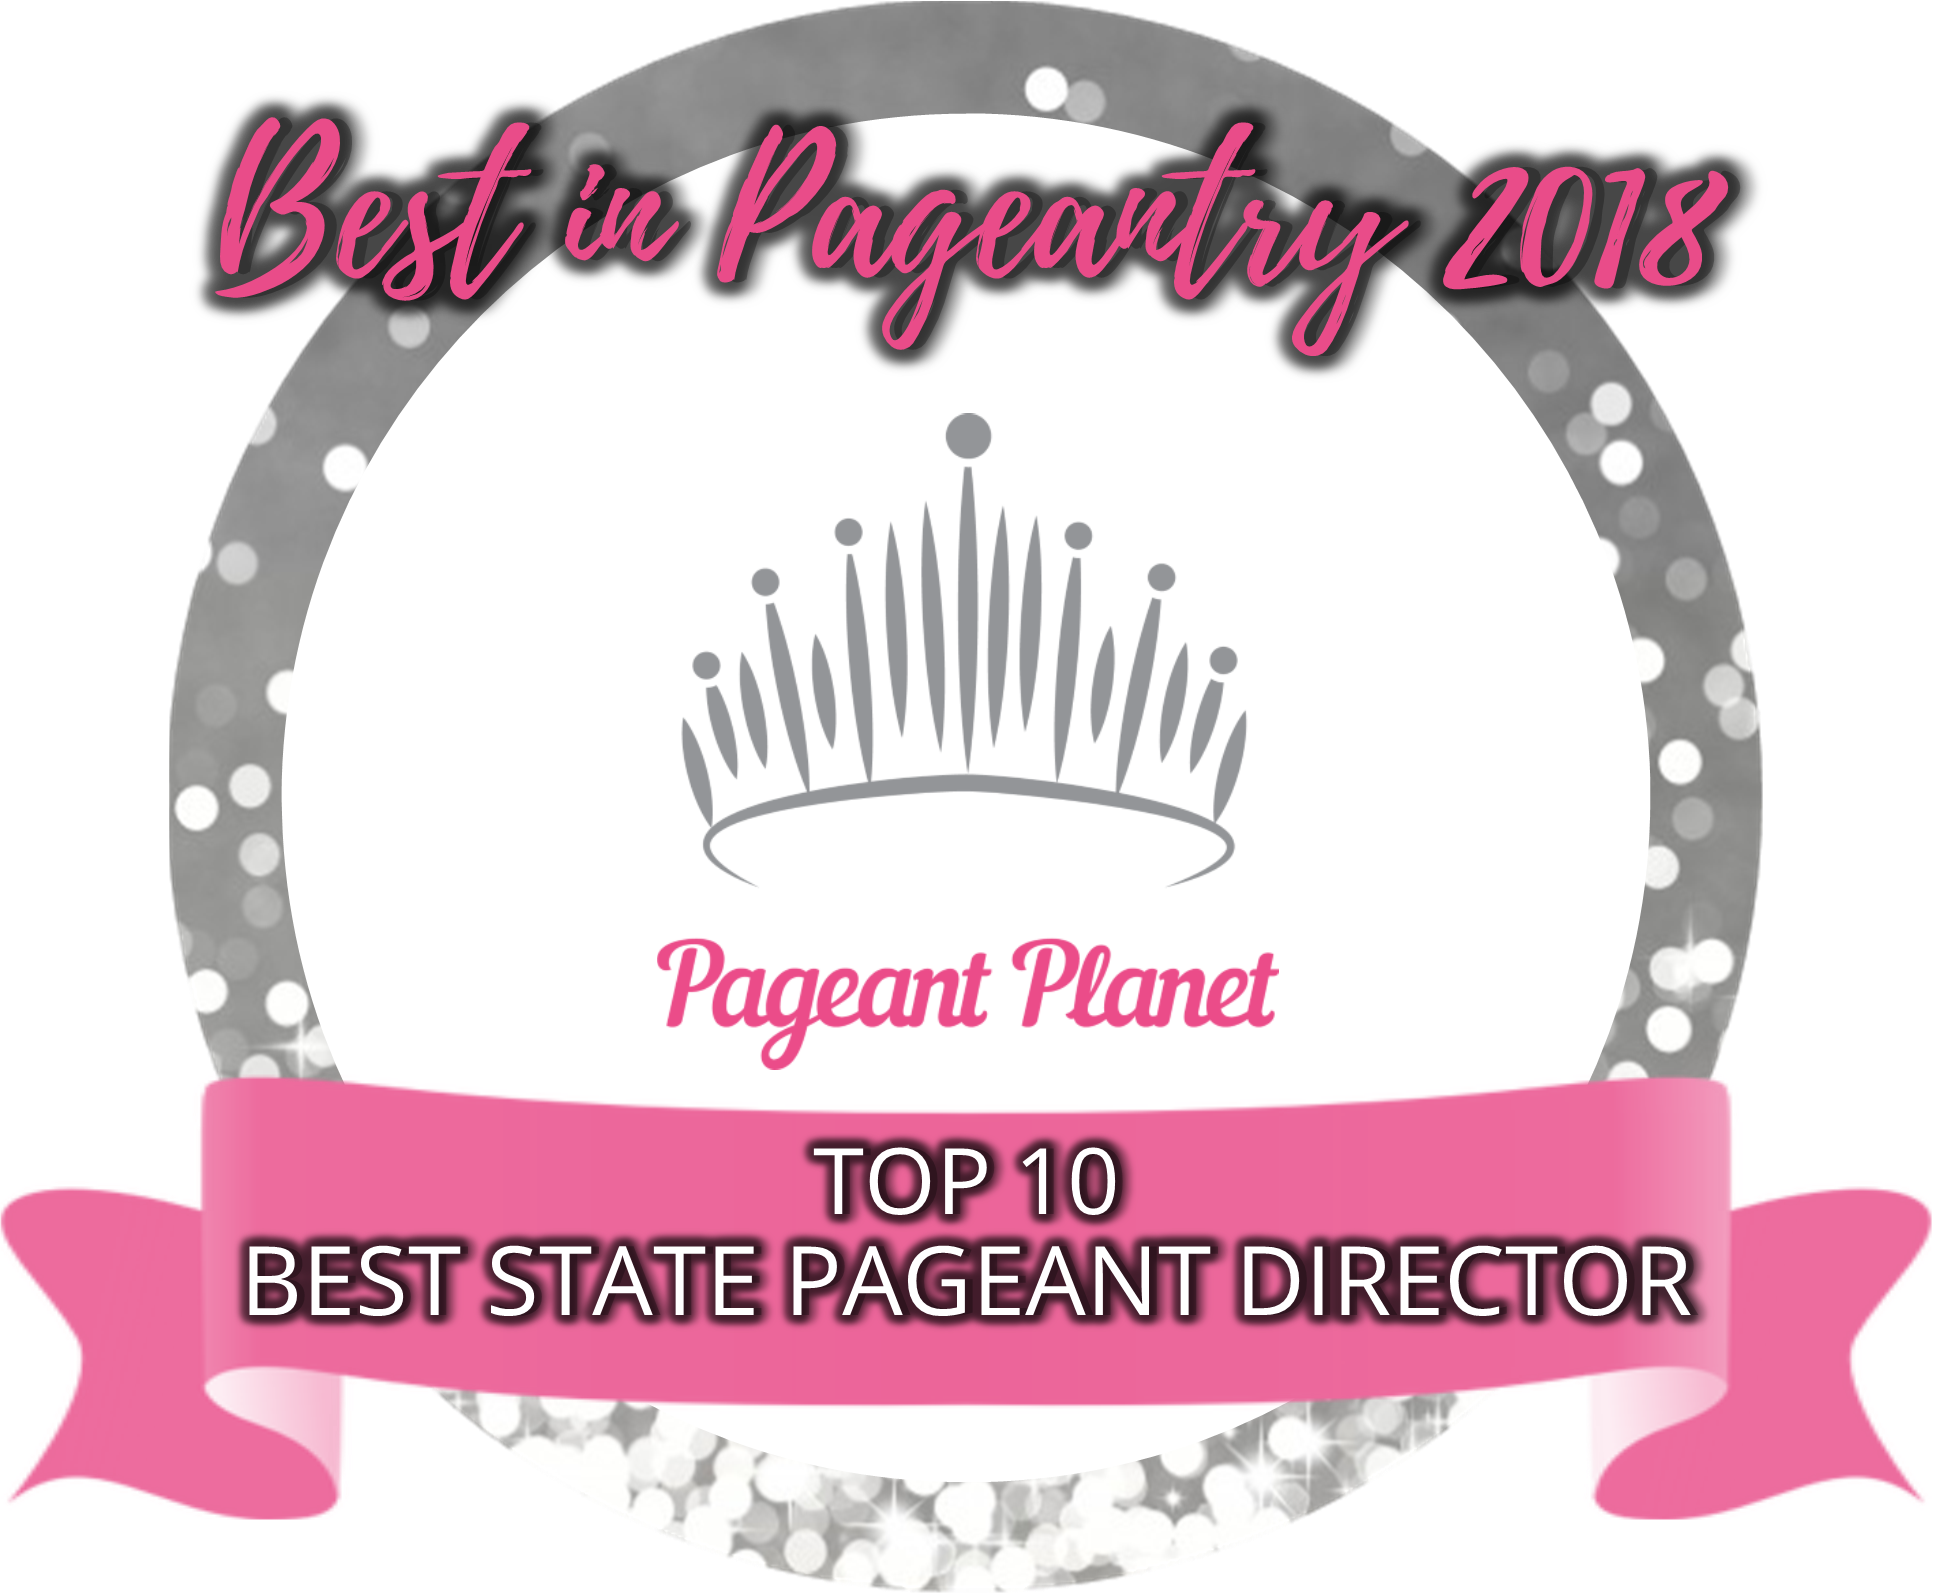 Top 10 Best State Pageant Director of 2018